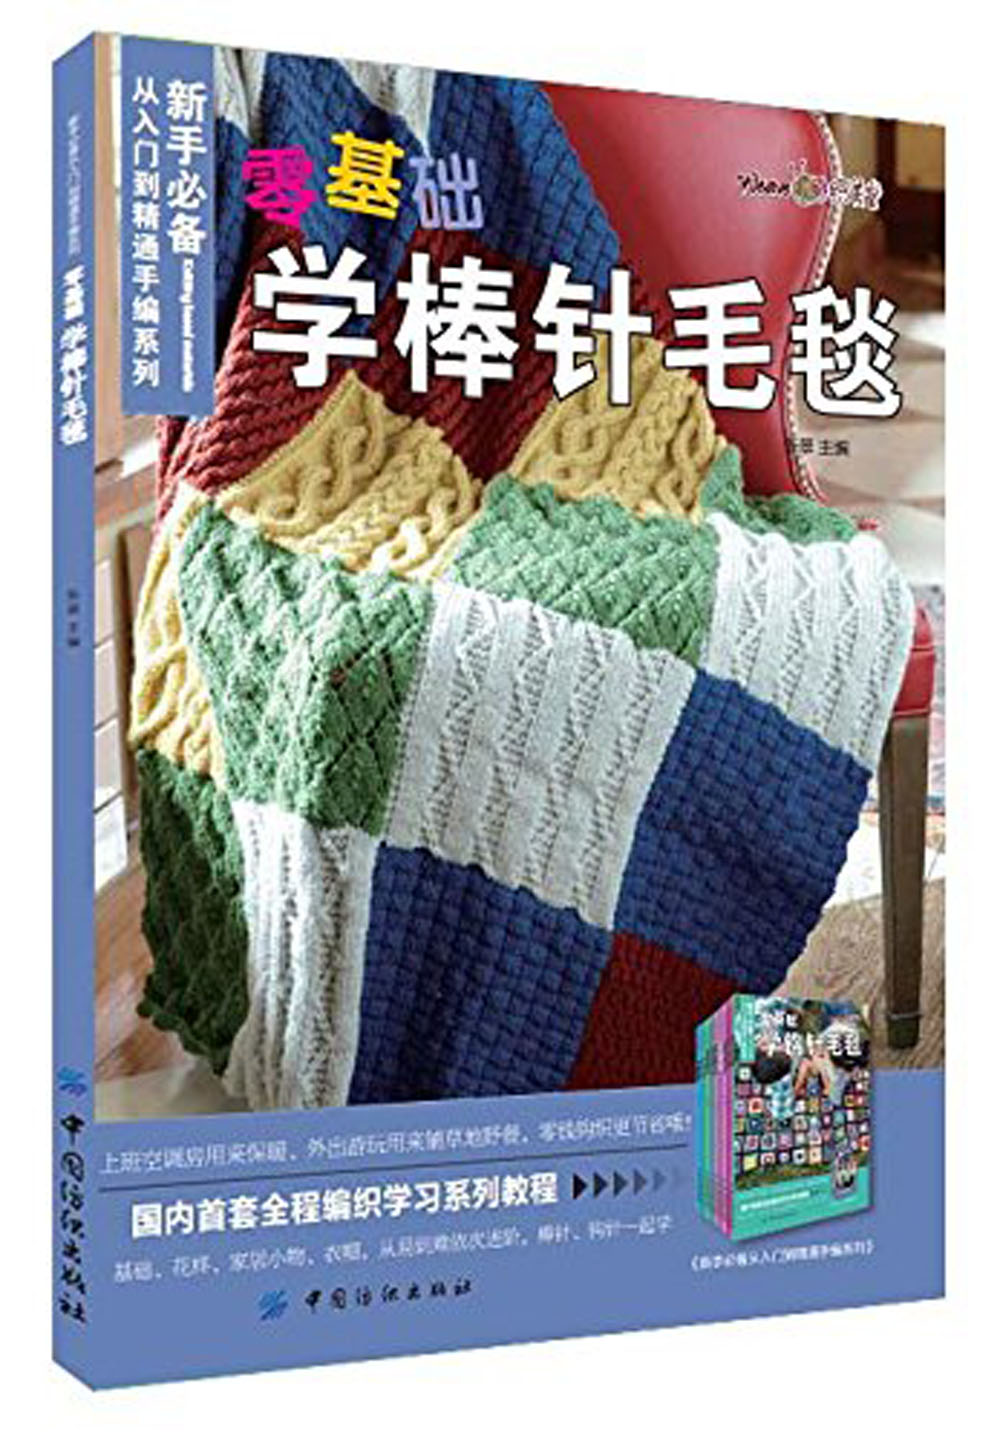 Knitting Based Materlals From Zero Basis To Master / Chinese Knitting Pattern Book